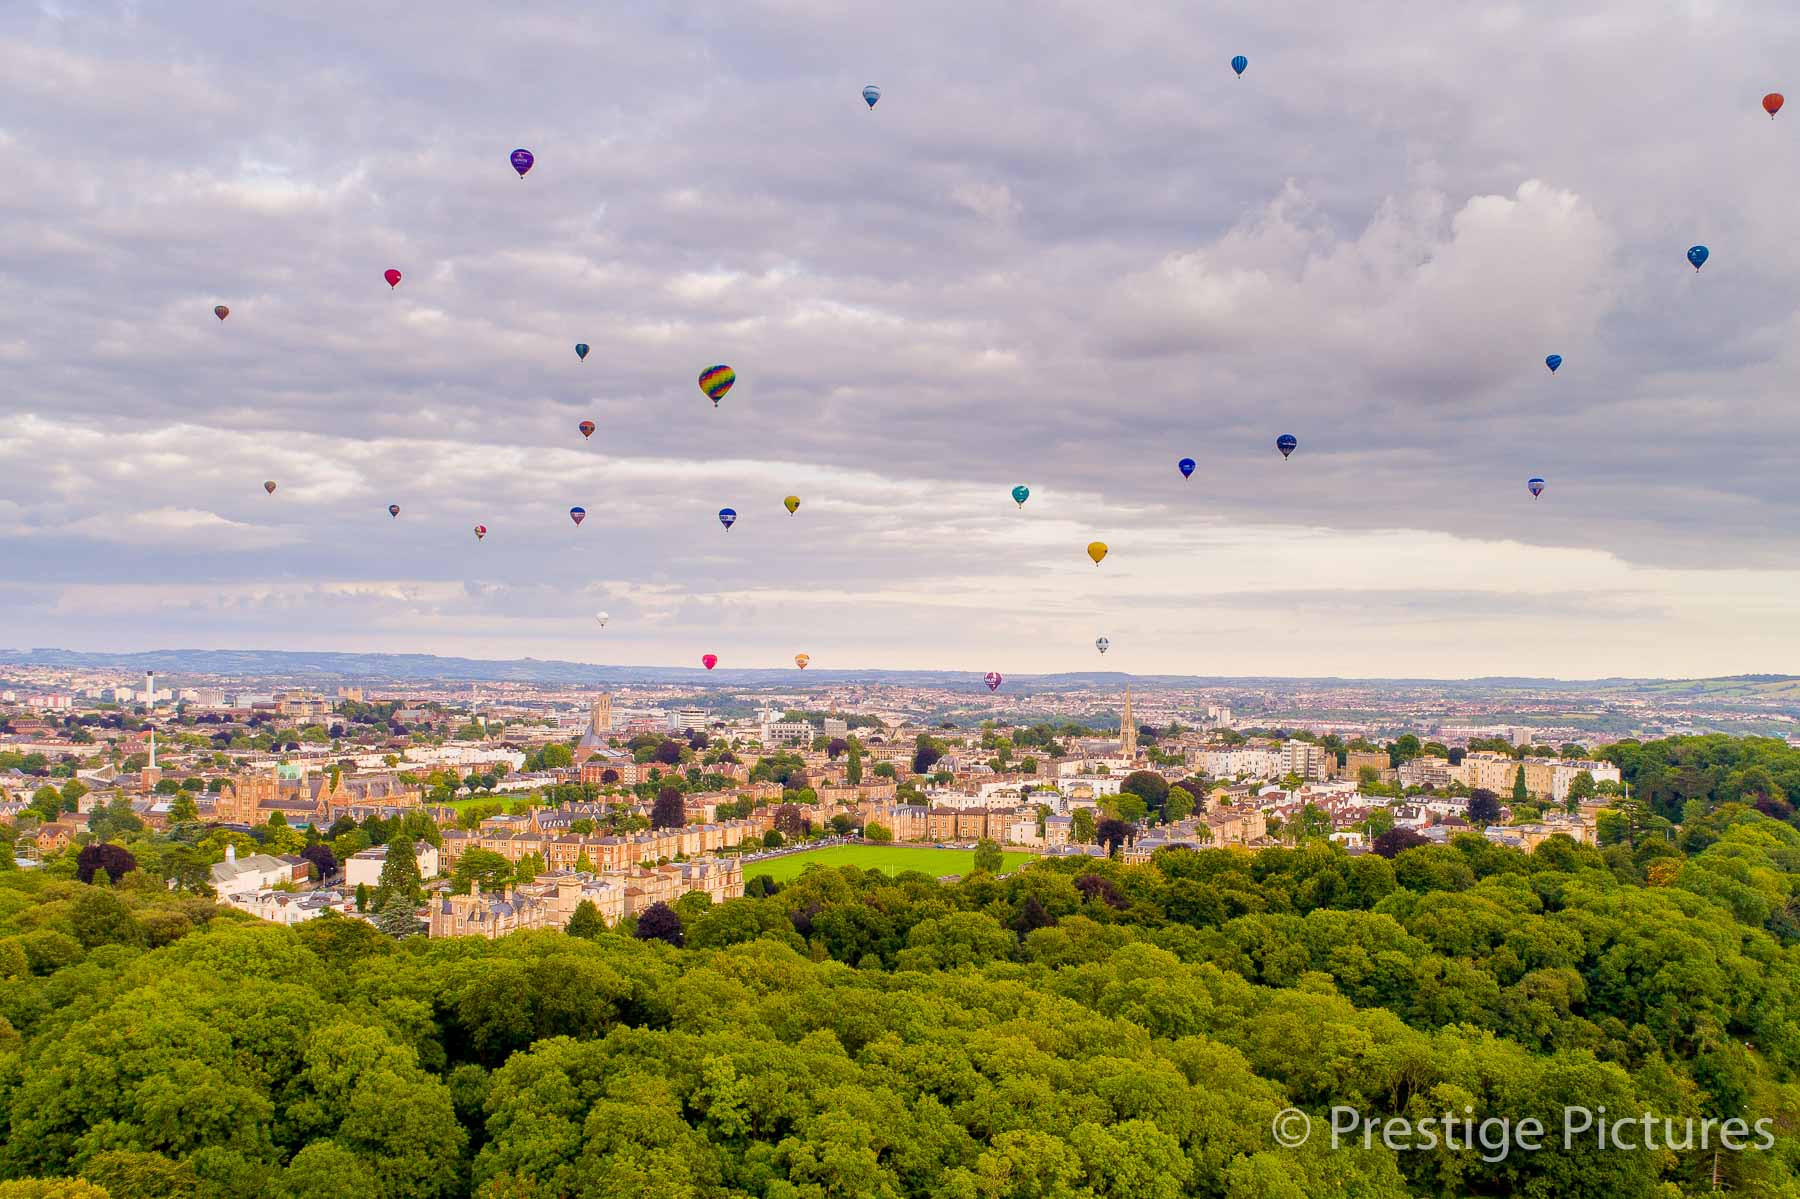 aerial view of 30 hot air balloons over Bristol